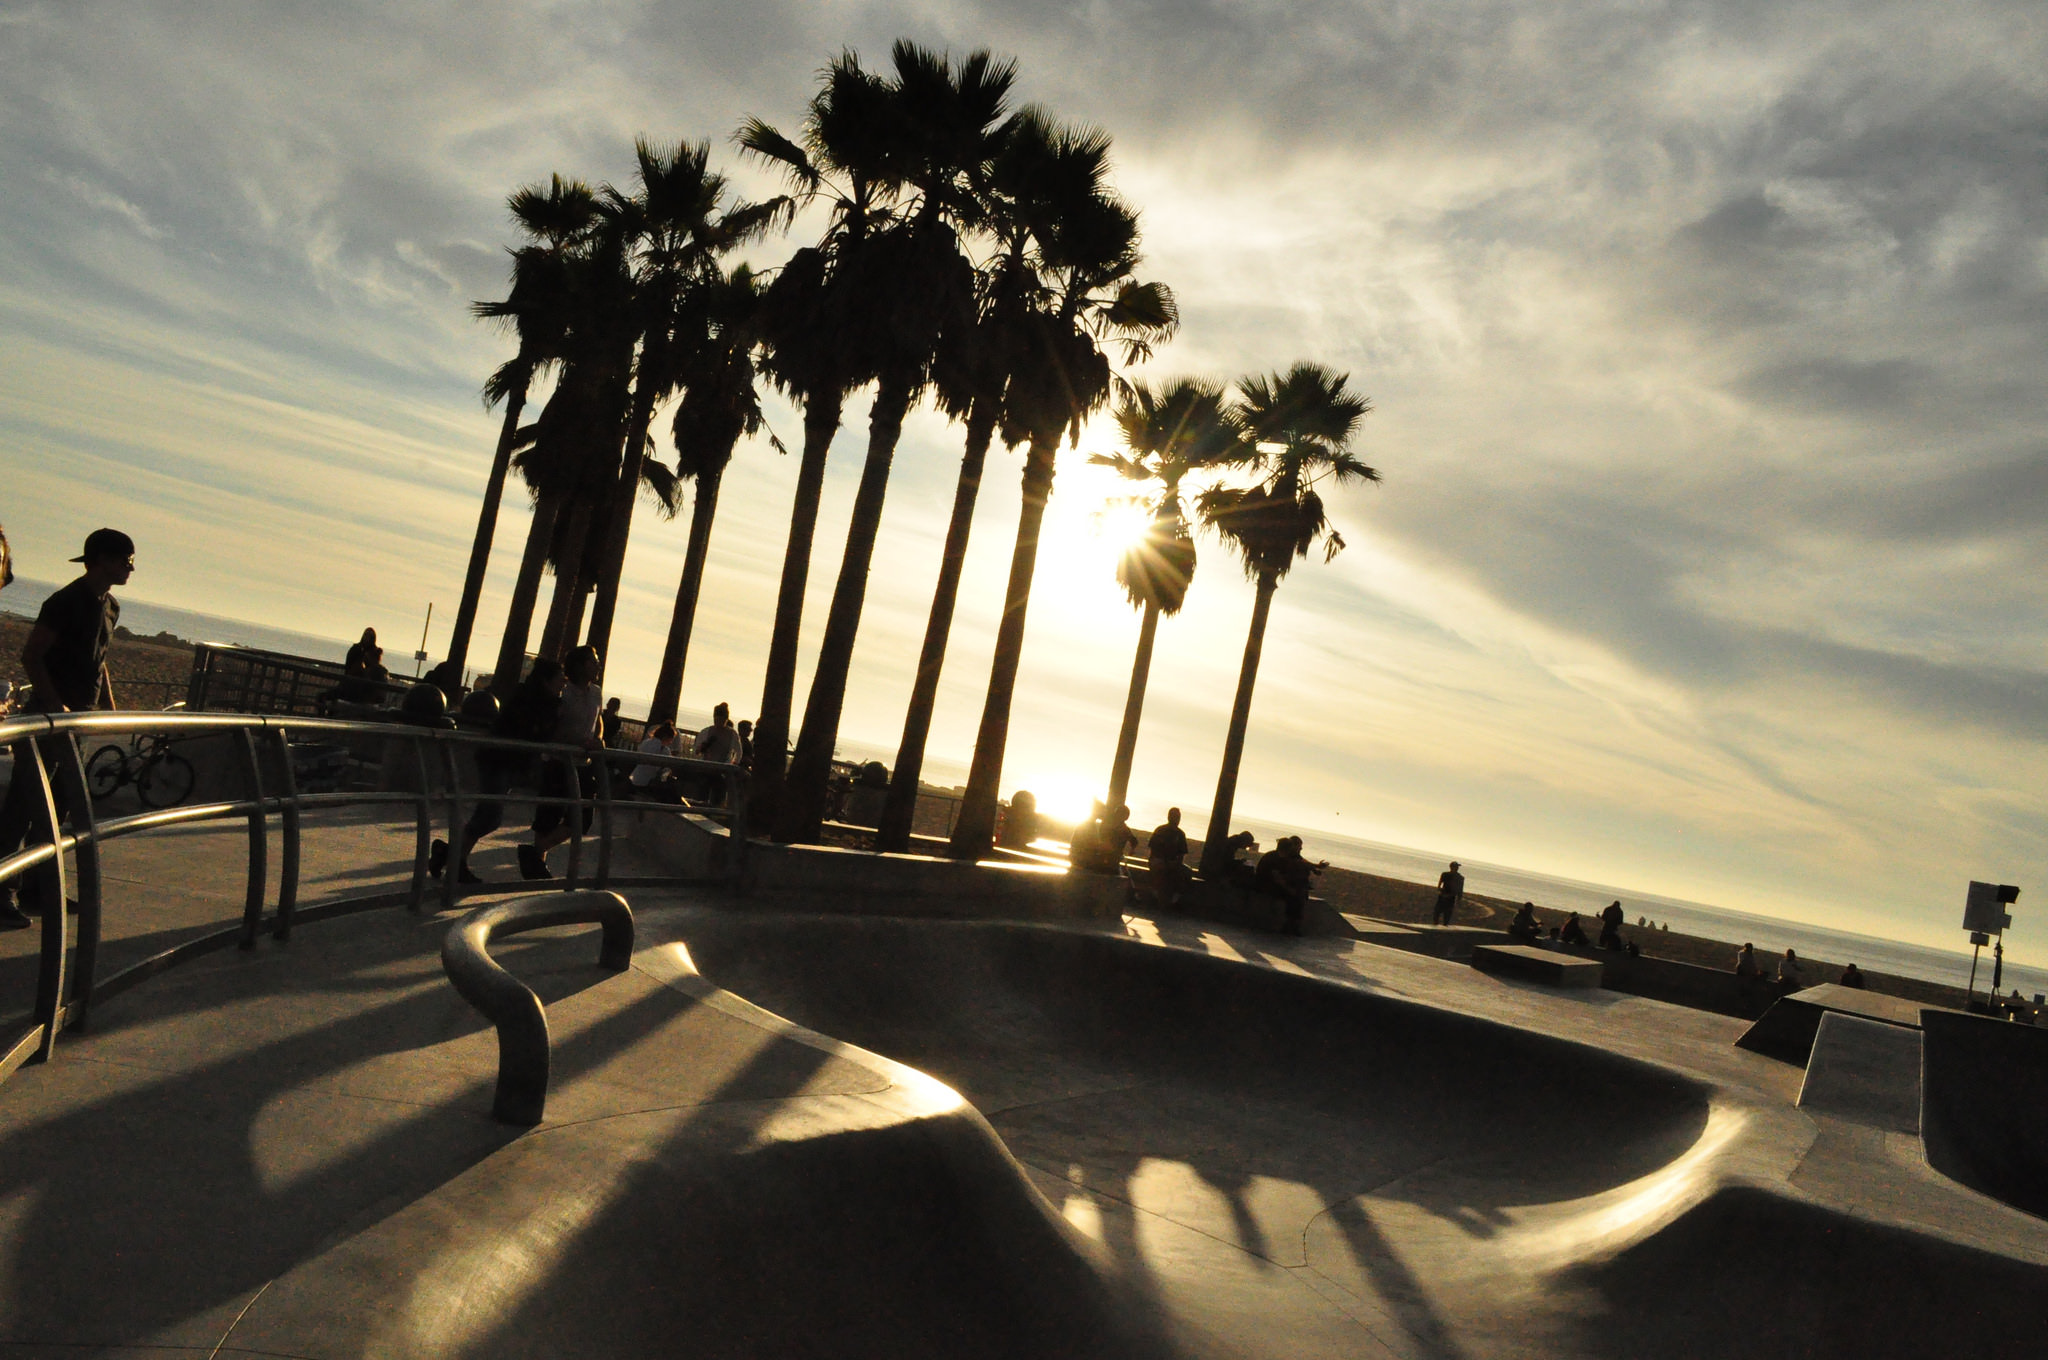 Some of The Best Day Trips in Los Angeles are Santa Monica and Venice